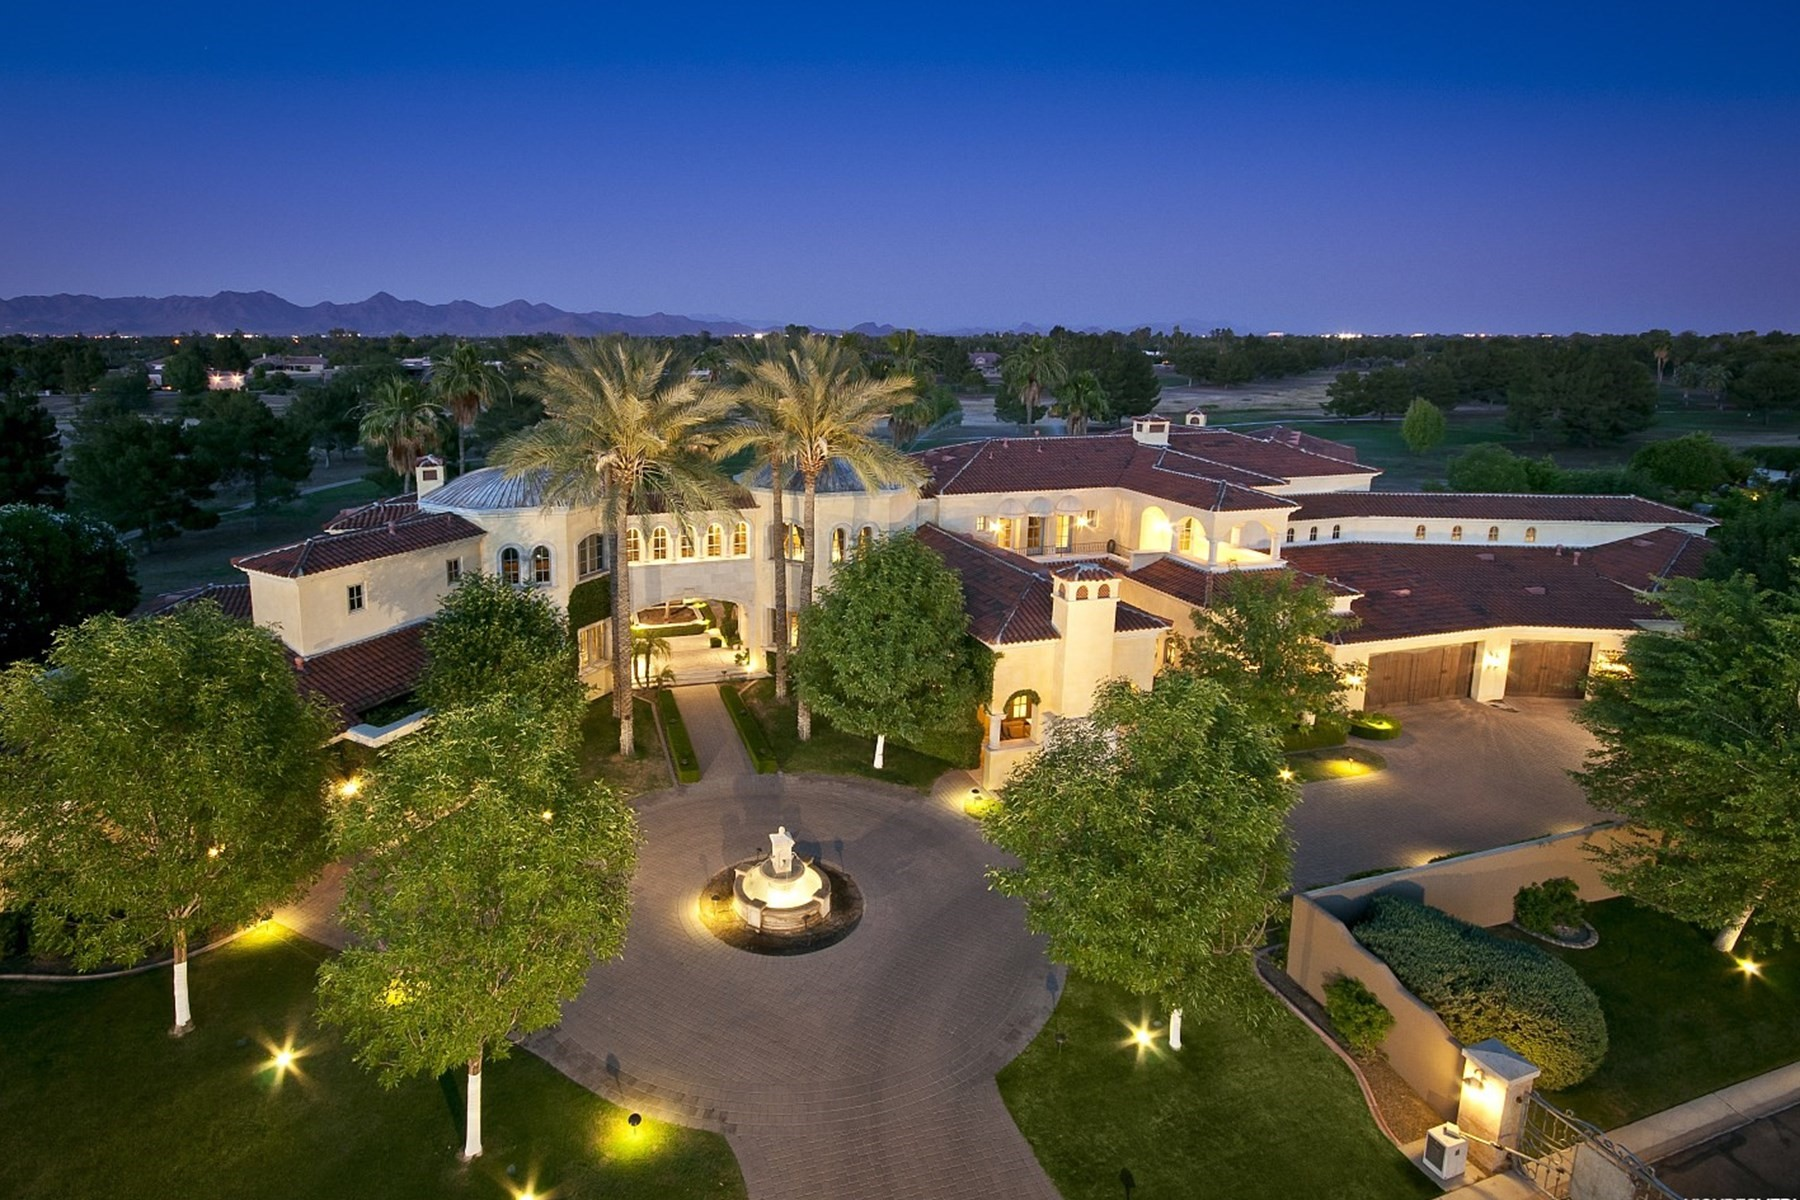 Casa Unifamiliar por un Venta en Classic Mediterranean Design Grand Estate on the golf course. 9403 N 55 ST Paradise Valley, Arizona, 85253 Estados Unidos